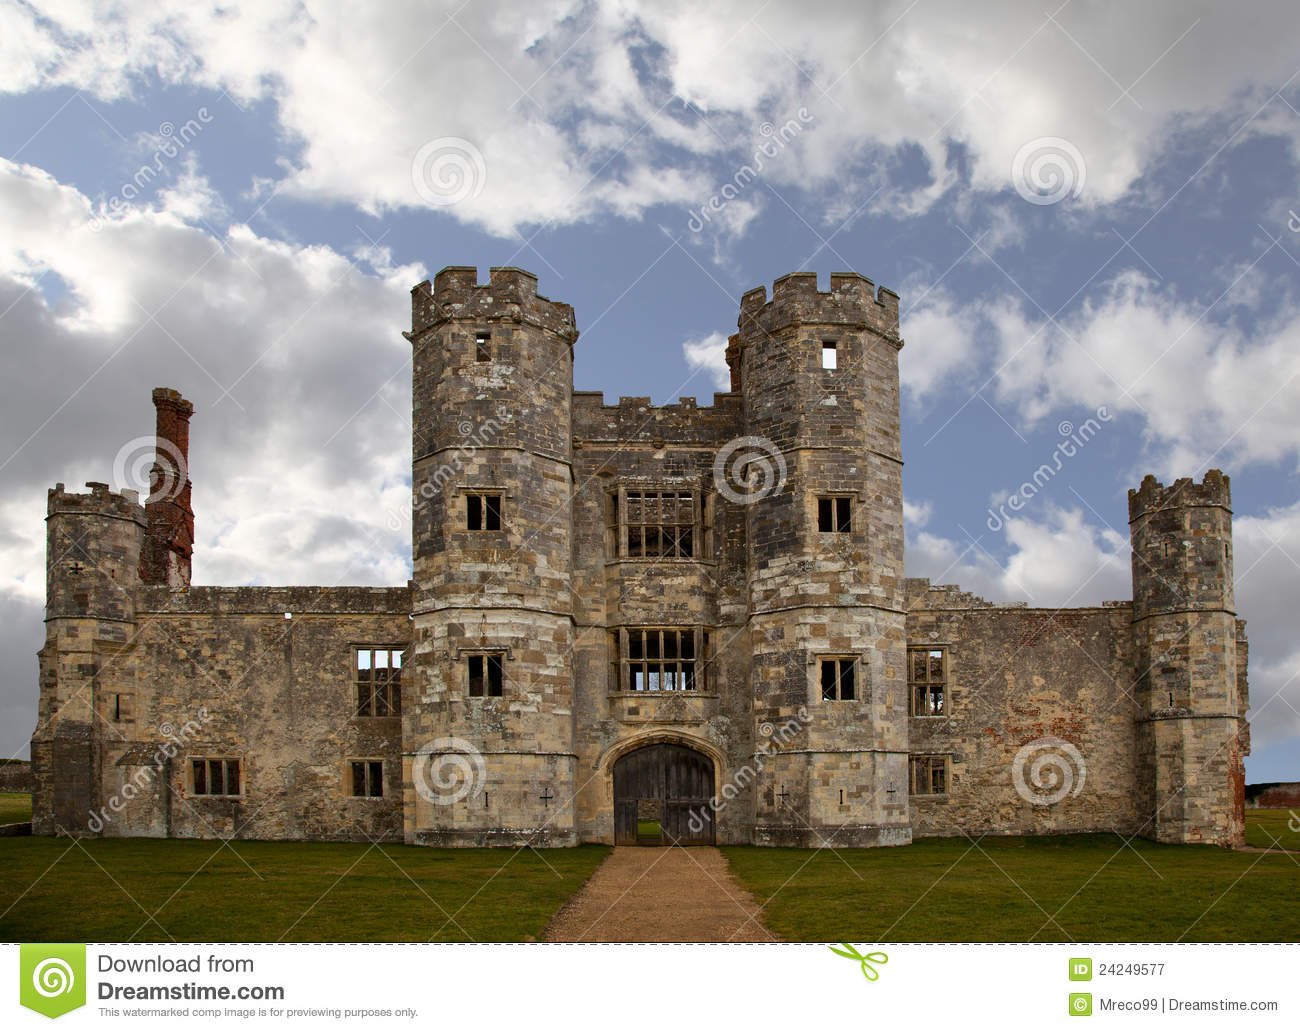 Related Keywords & Suggestions for old castles in england